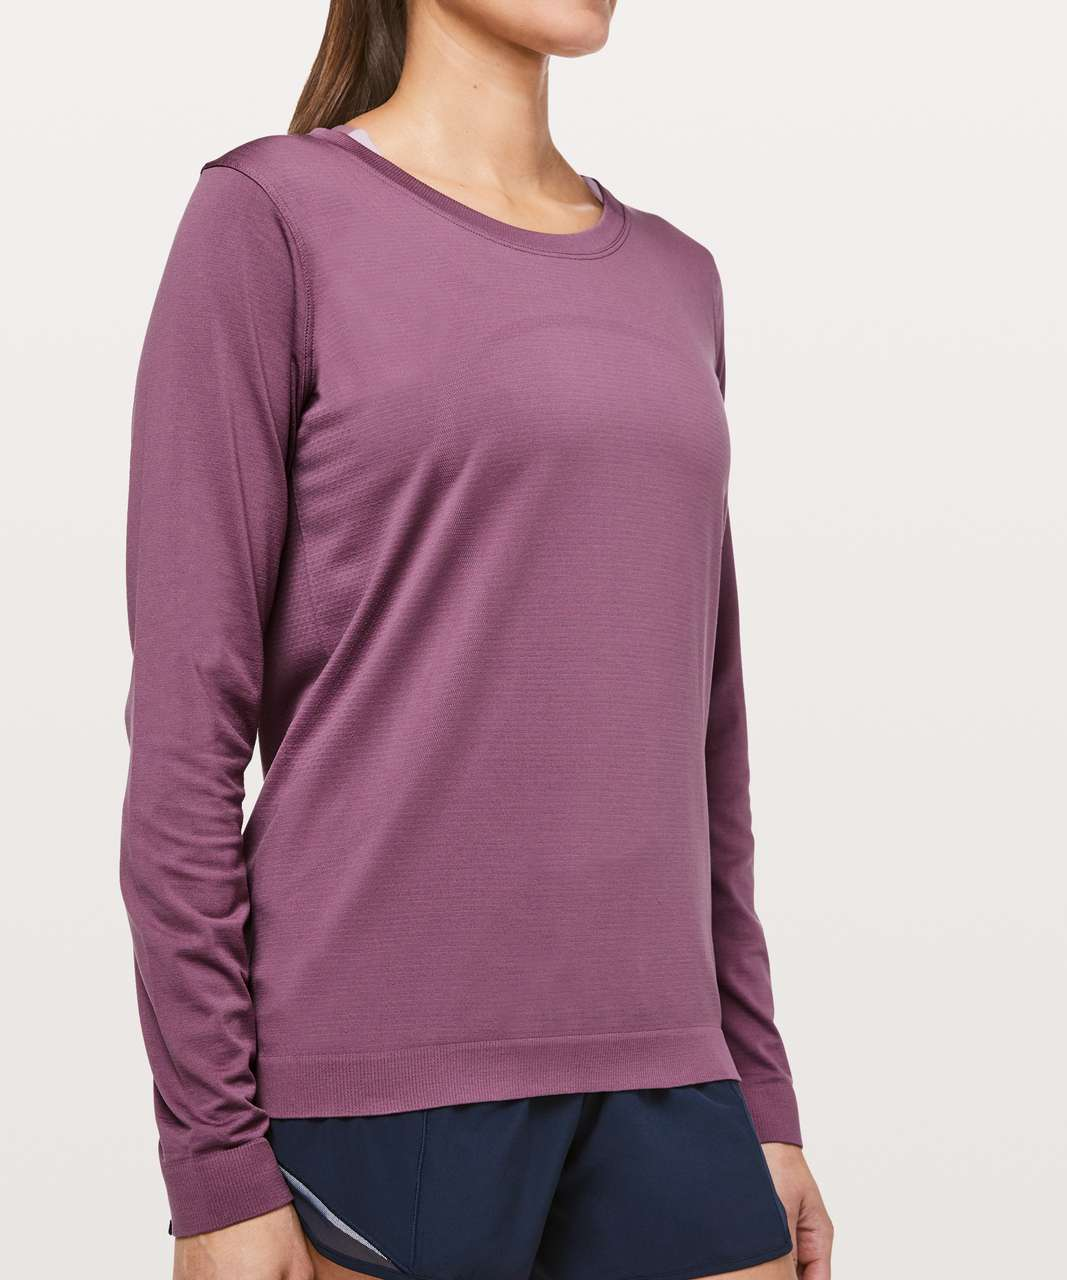 Lululemon Swiftly Tech Long Sleeve (Breeze) *Relaxed Fit - Vintage Plum / Vintage Plum